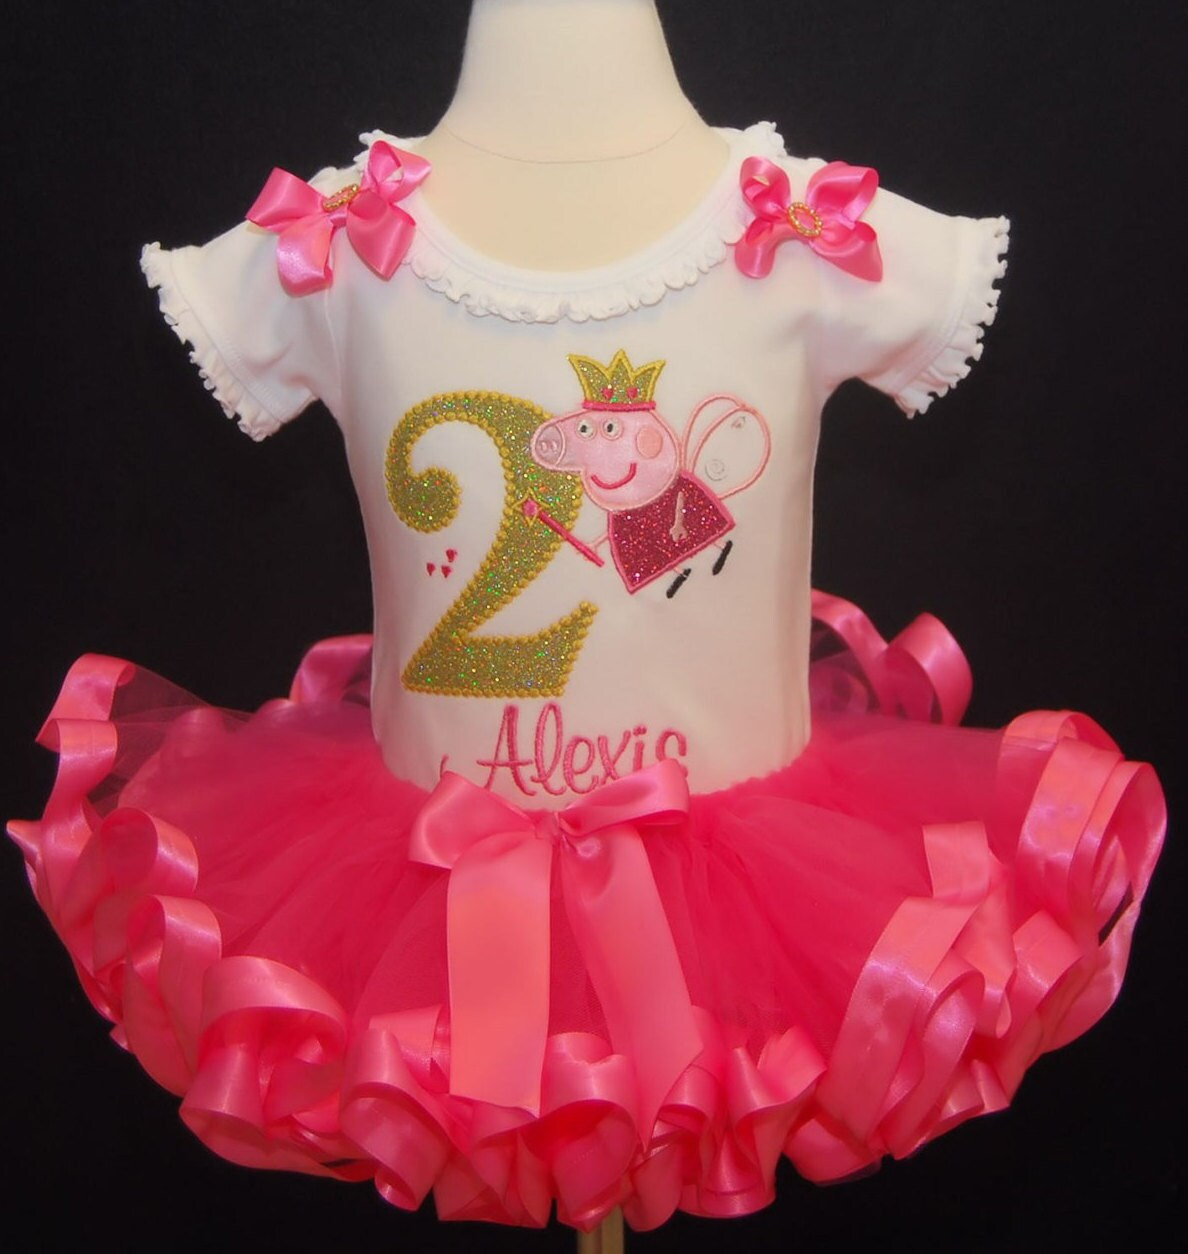 Peppa Pig Birthday Outfit tutu dress 2nd birthday pink tutu personalized birthday shirt ribbon trim tutu bloomers glitter tutu baby headband